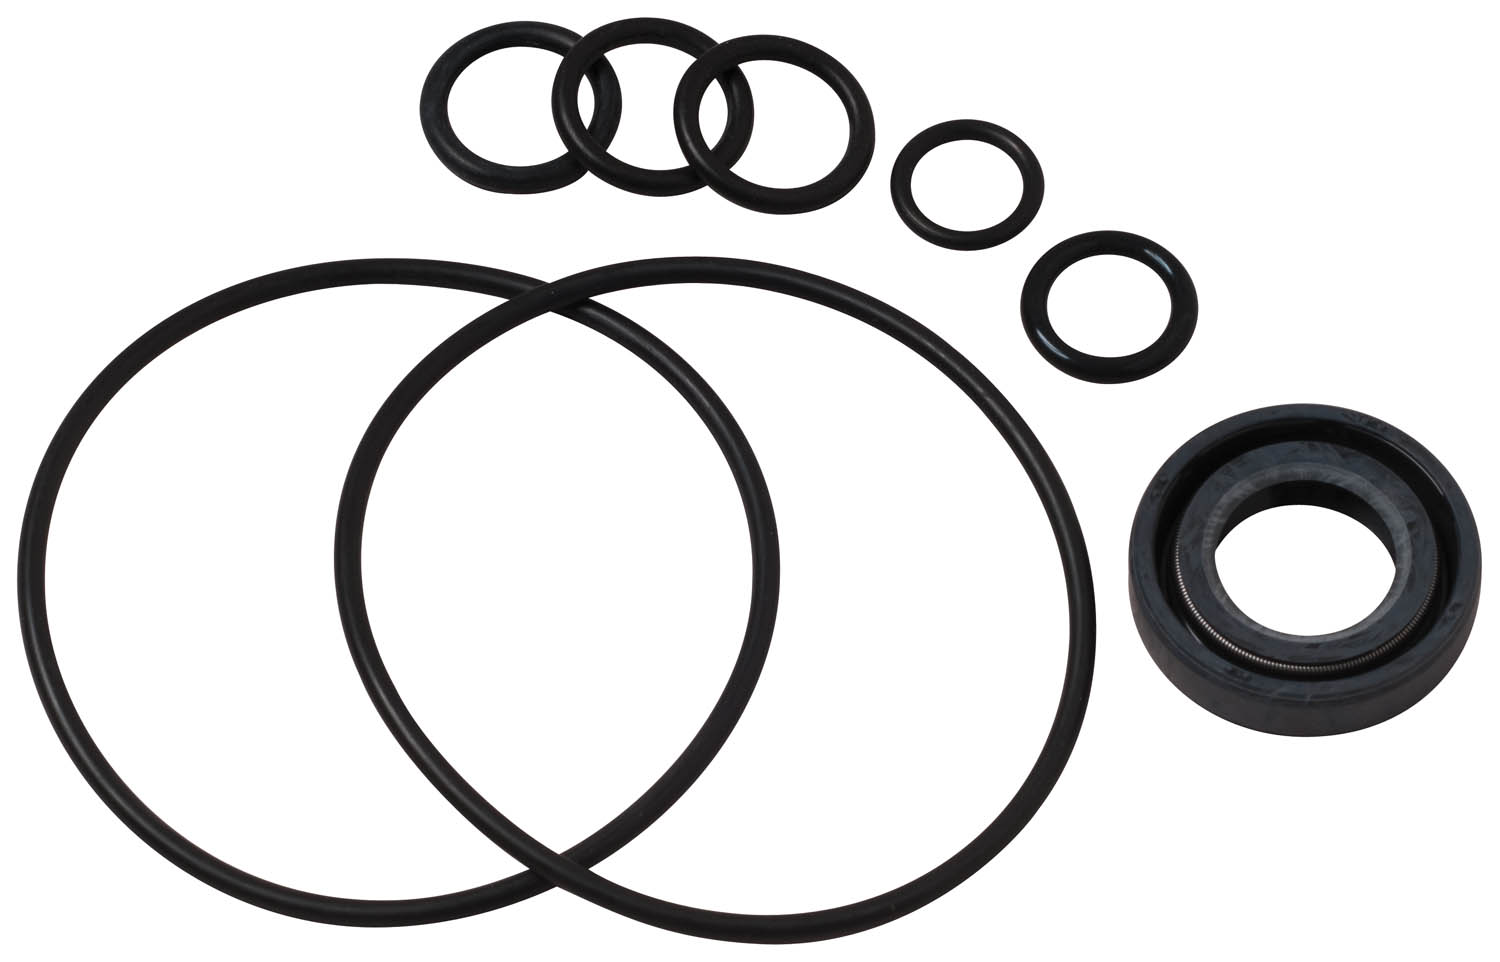 Gates Racing Power Steering Repair Kit